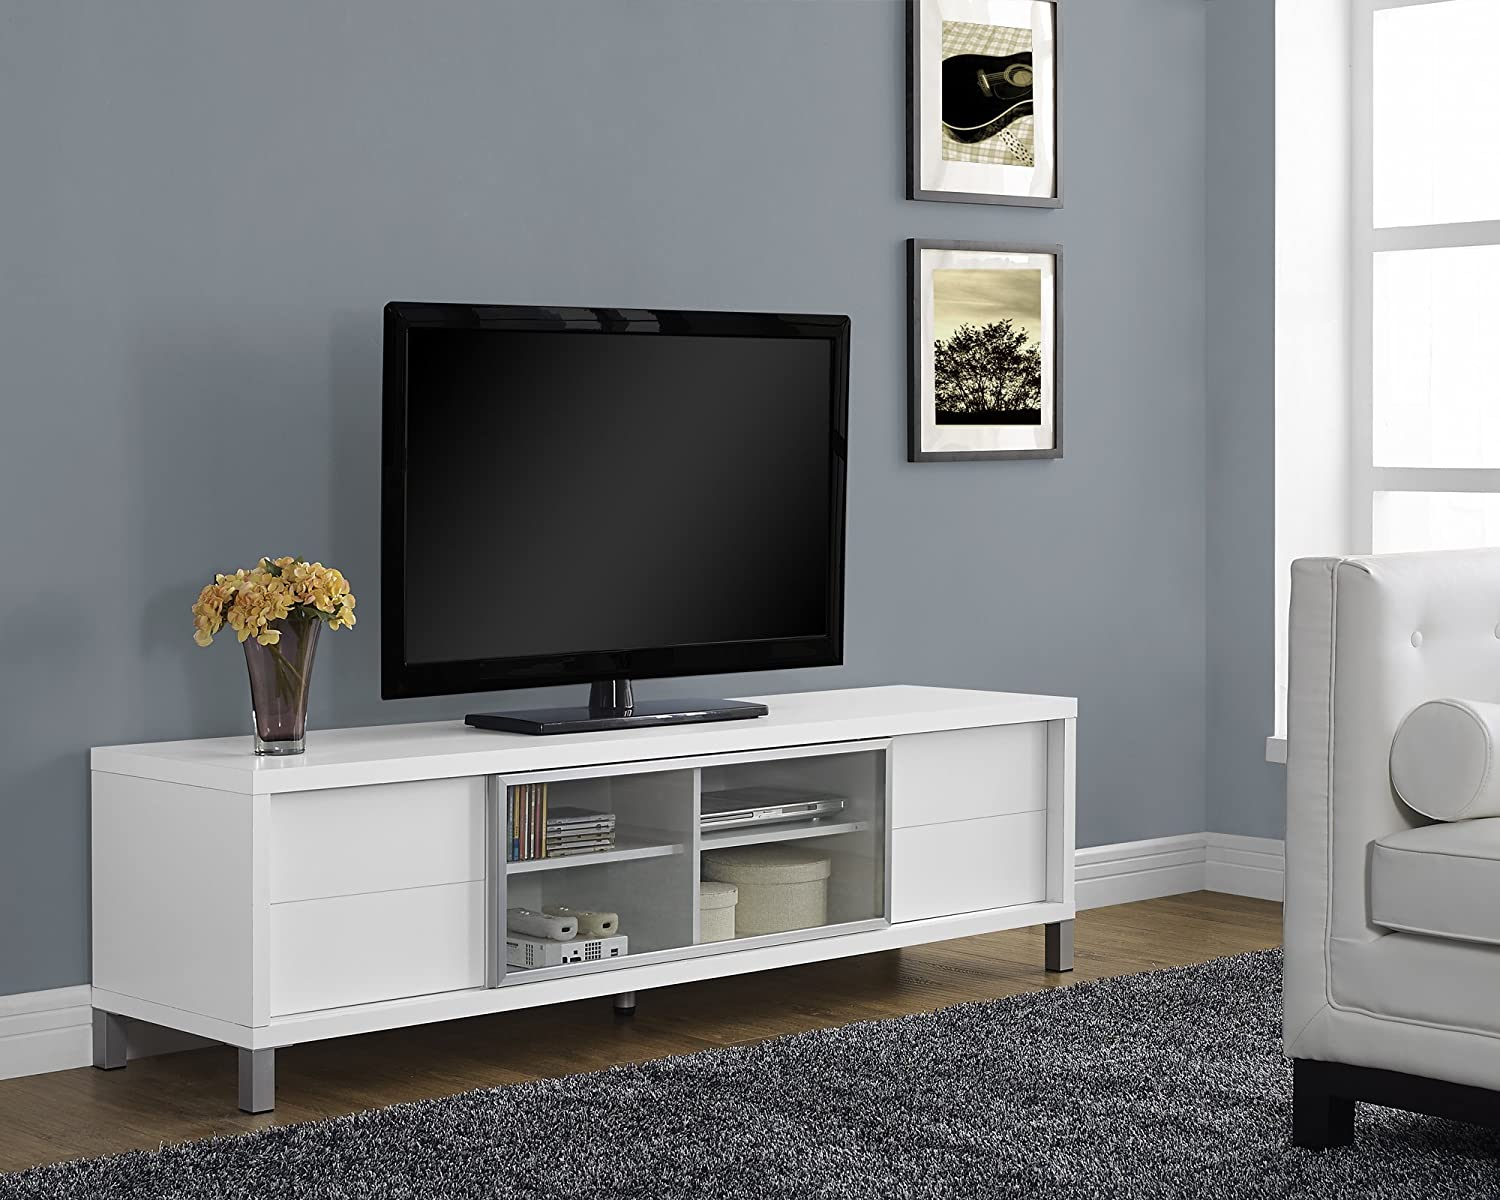 Amazon monarch specialties i 2537 tv console euro style amazon monarch specialties i 2537 tv console euro style white 70 kitchen dining geotapseo Image collections